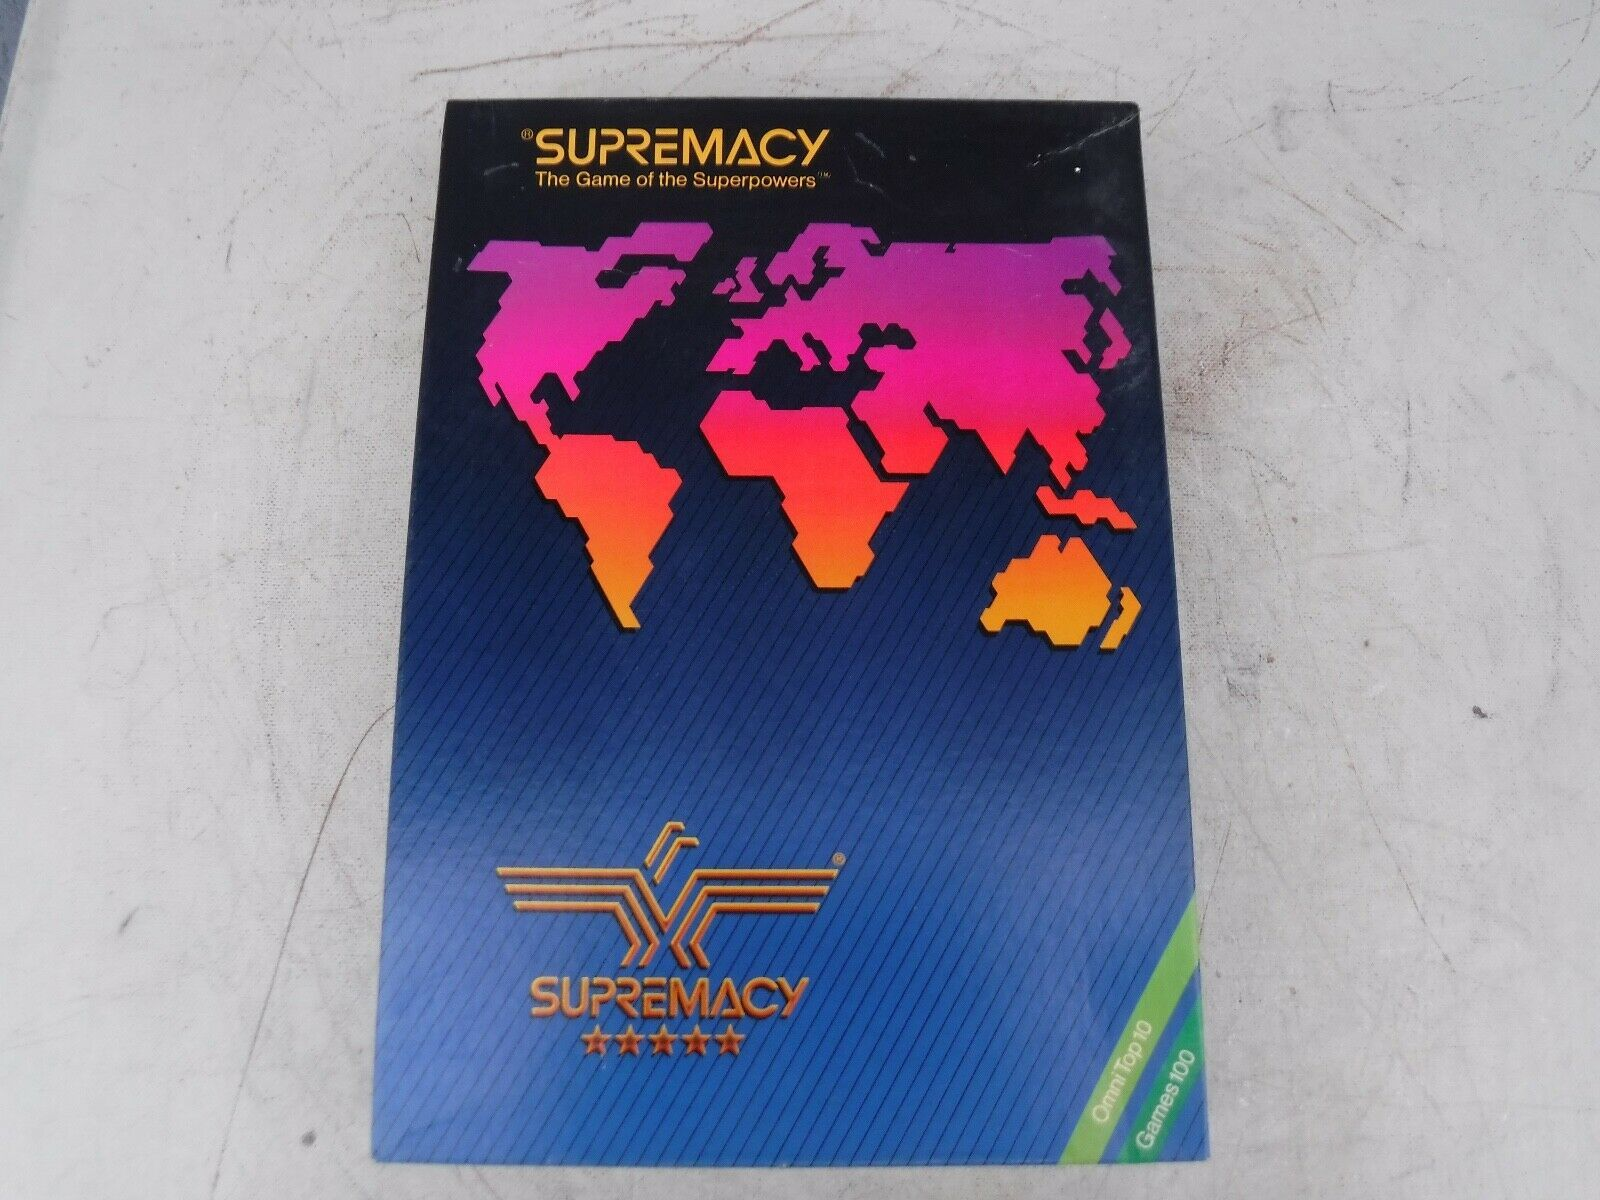 Vintage 1986 Supremacy Game of the Superpowers Global Domination Complete